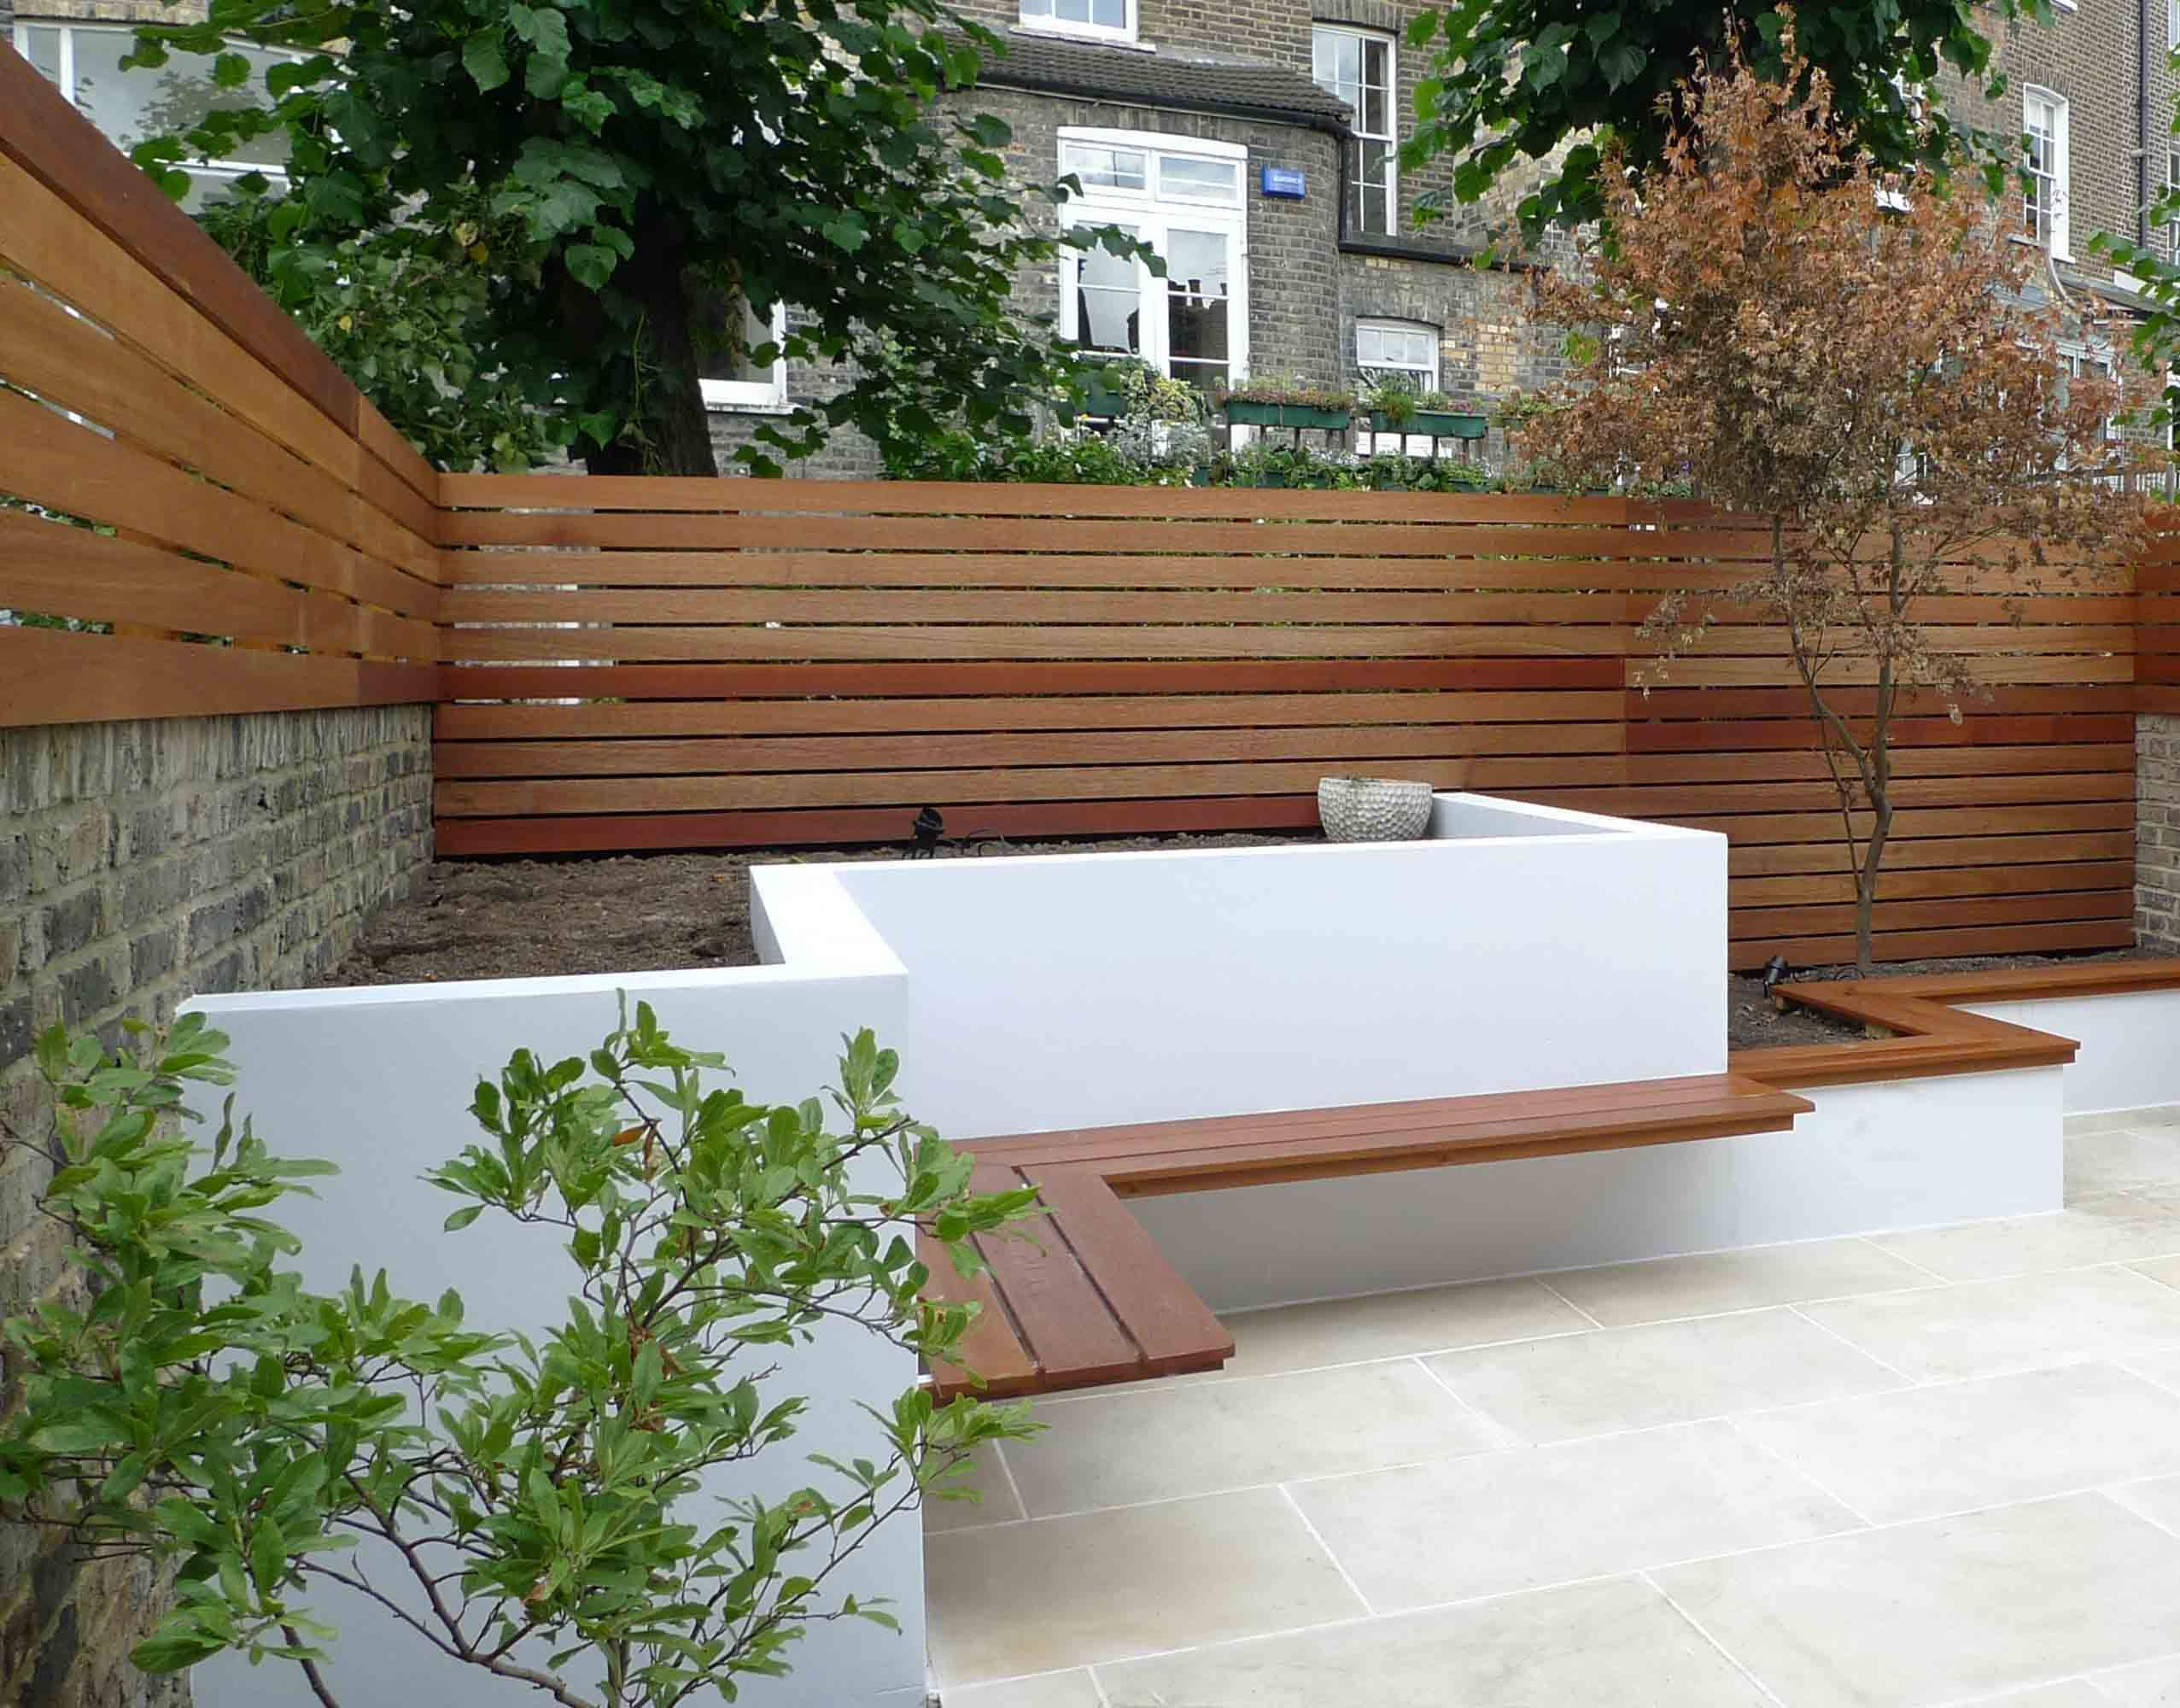 Petit Jardin Moderne Visite Doasis En Photos Contemporary - Contemporary garden ideas uk